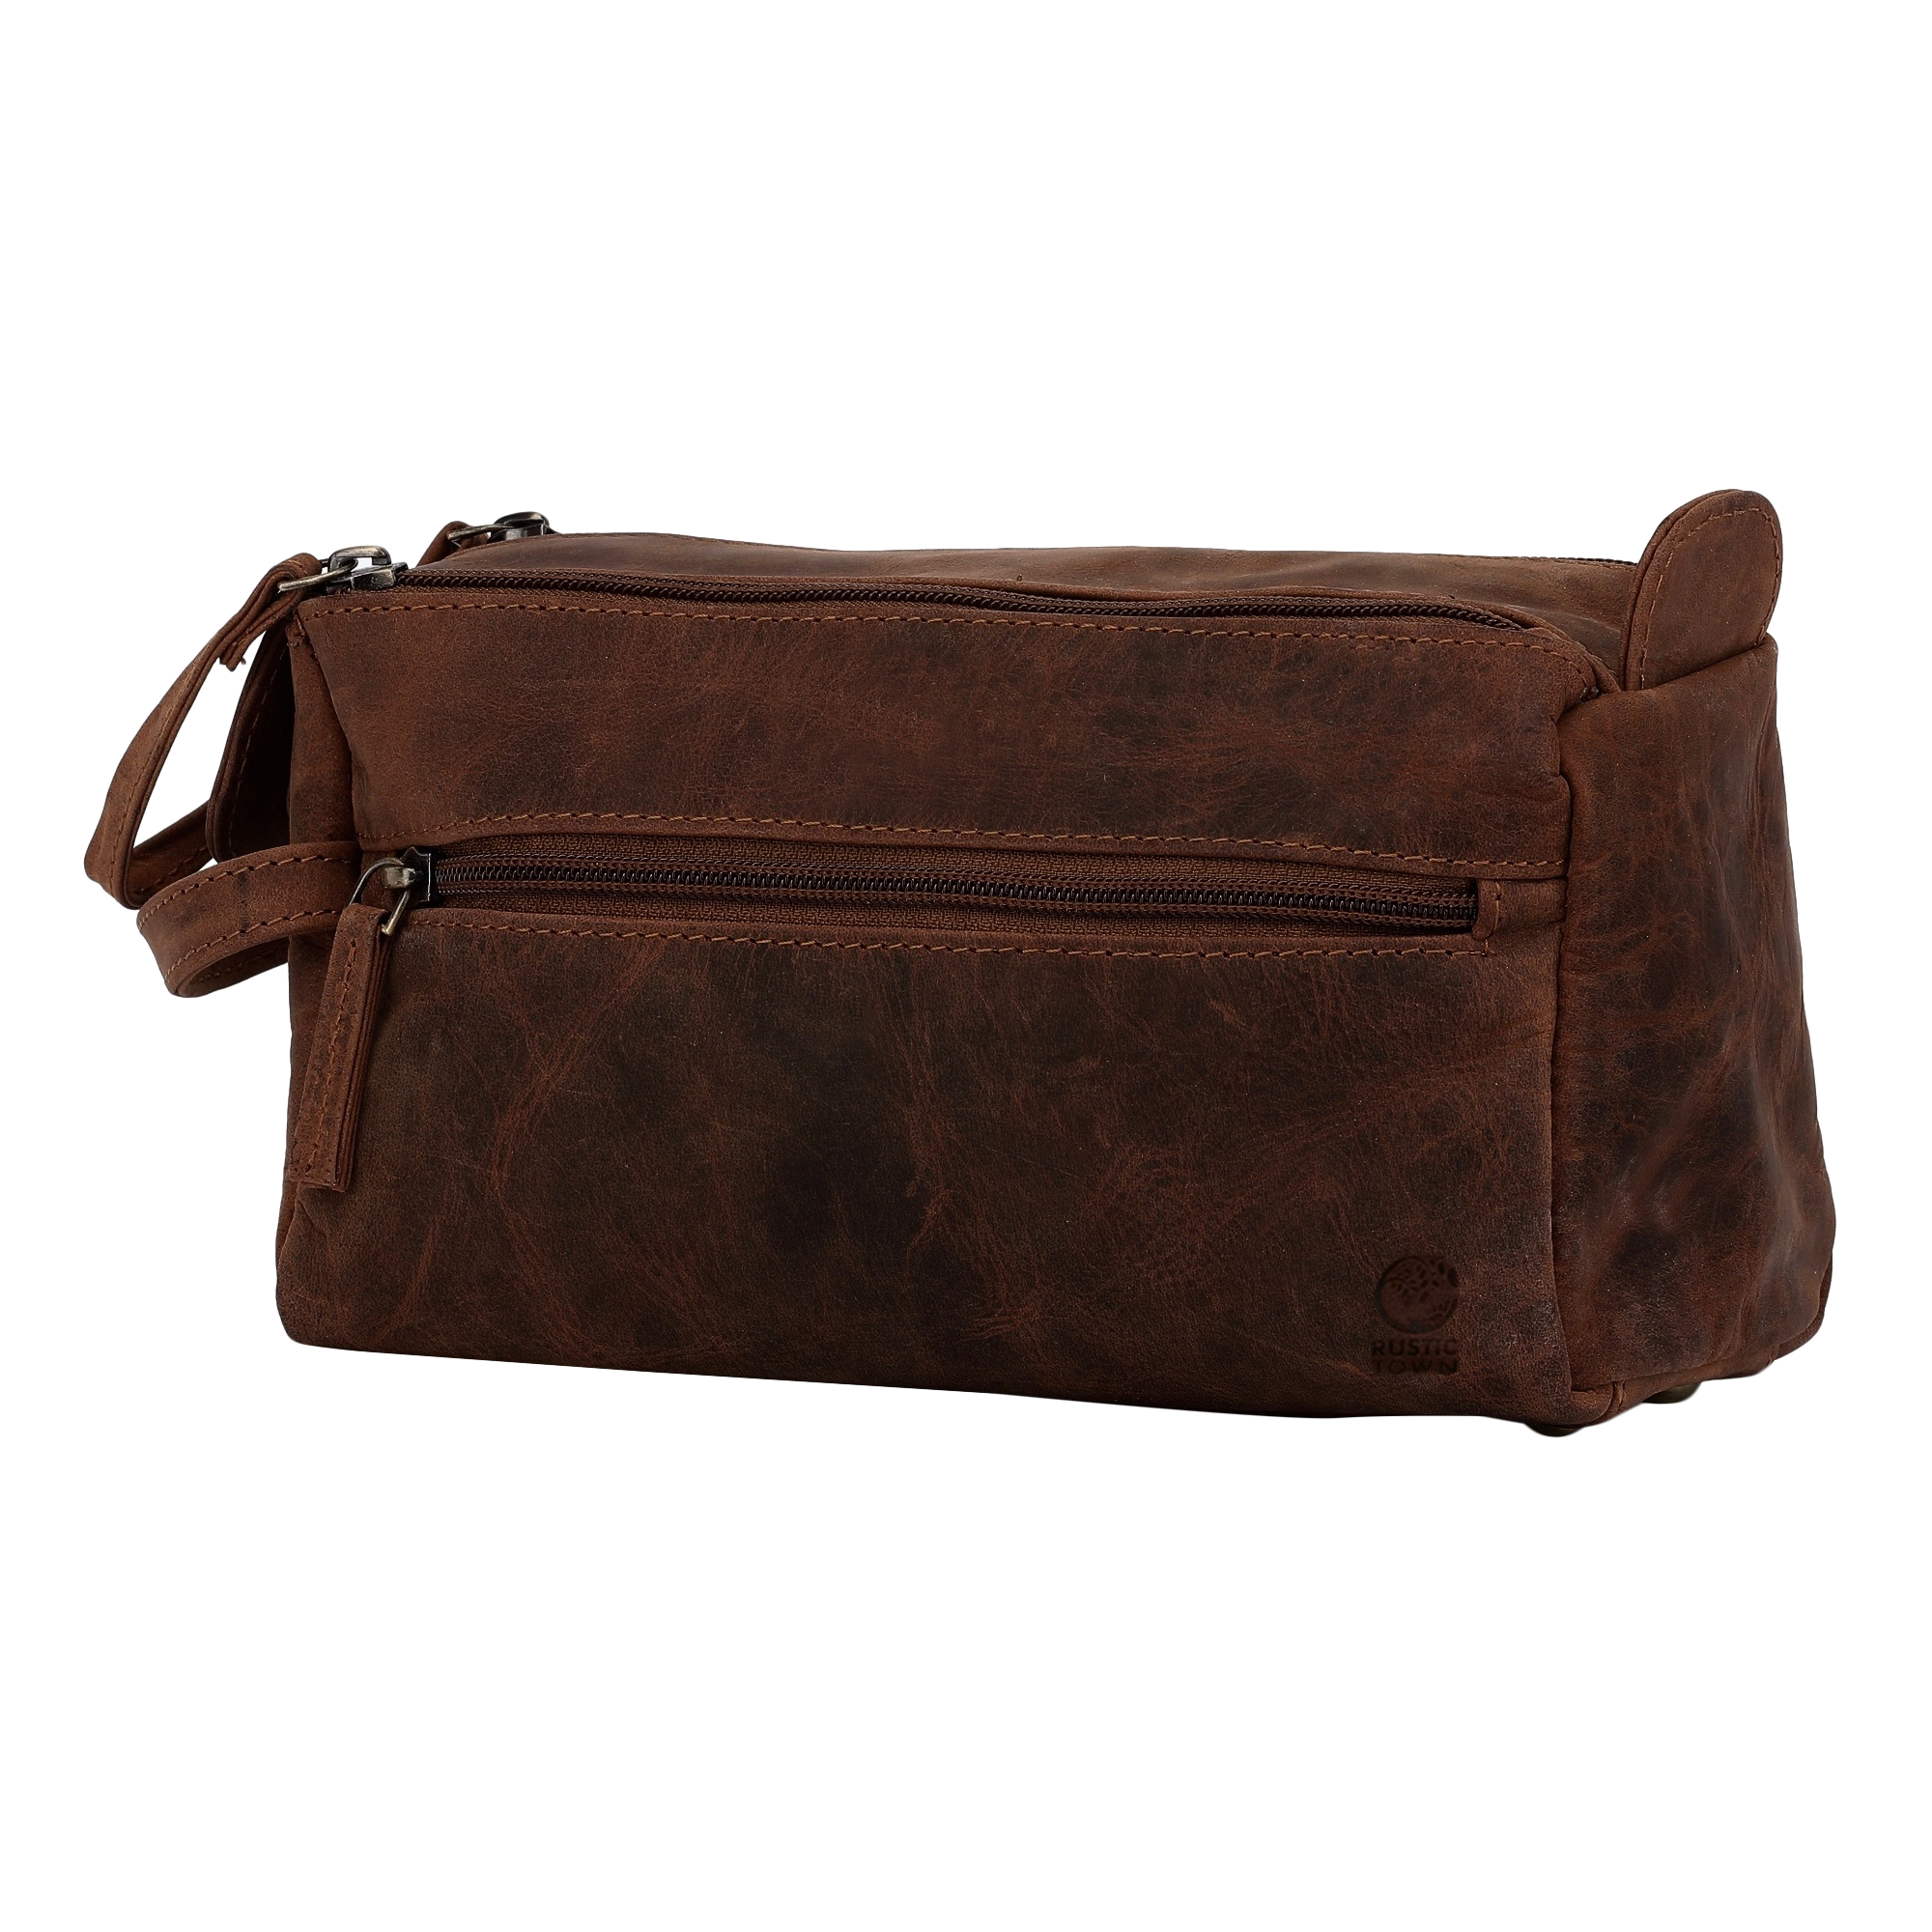 Hugh Leather Shaving Bag For Travel (Dark Brown)